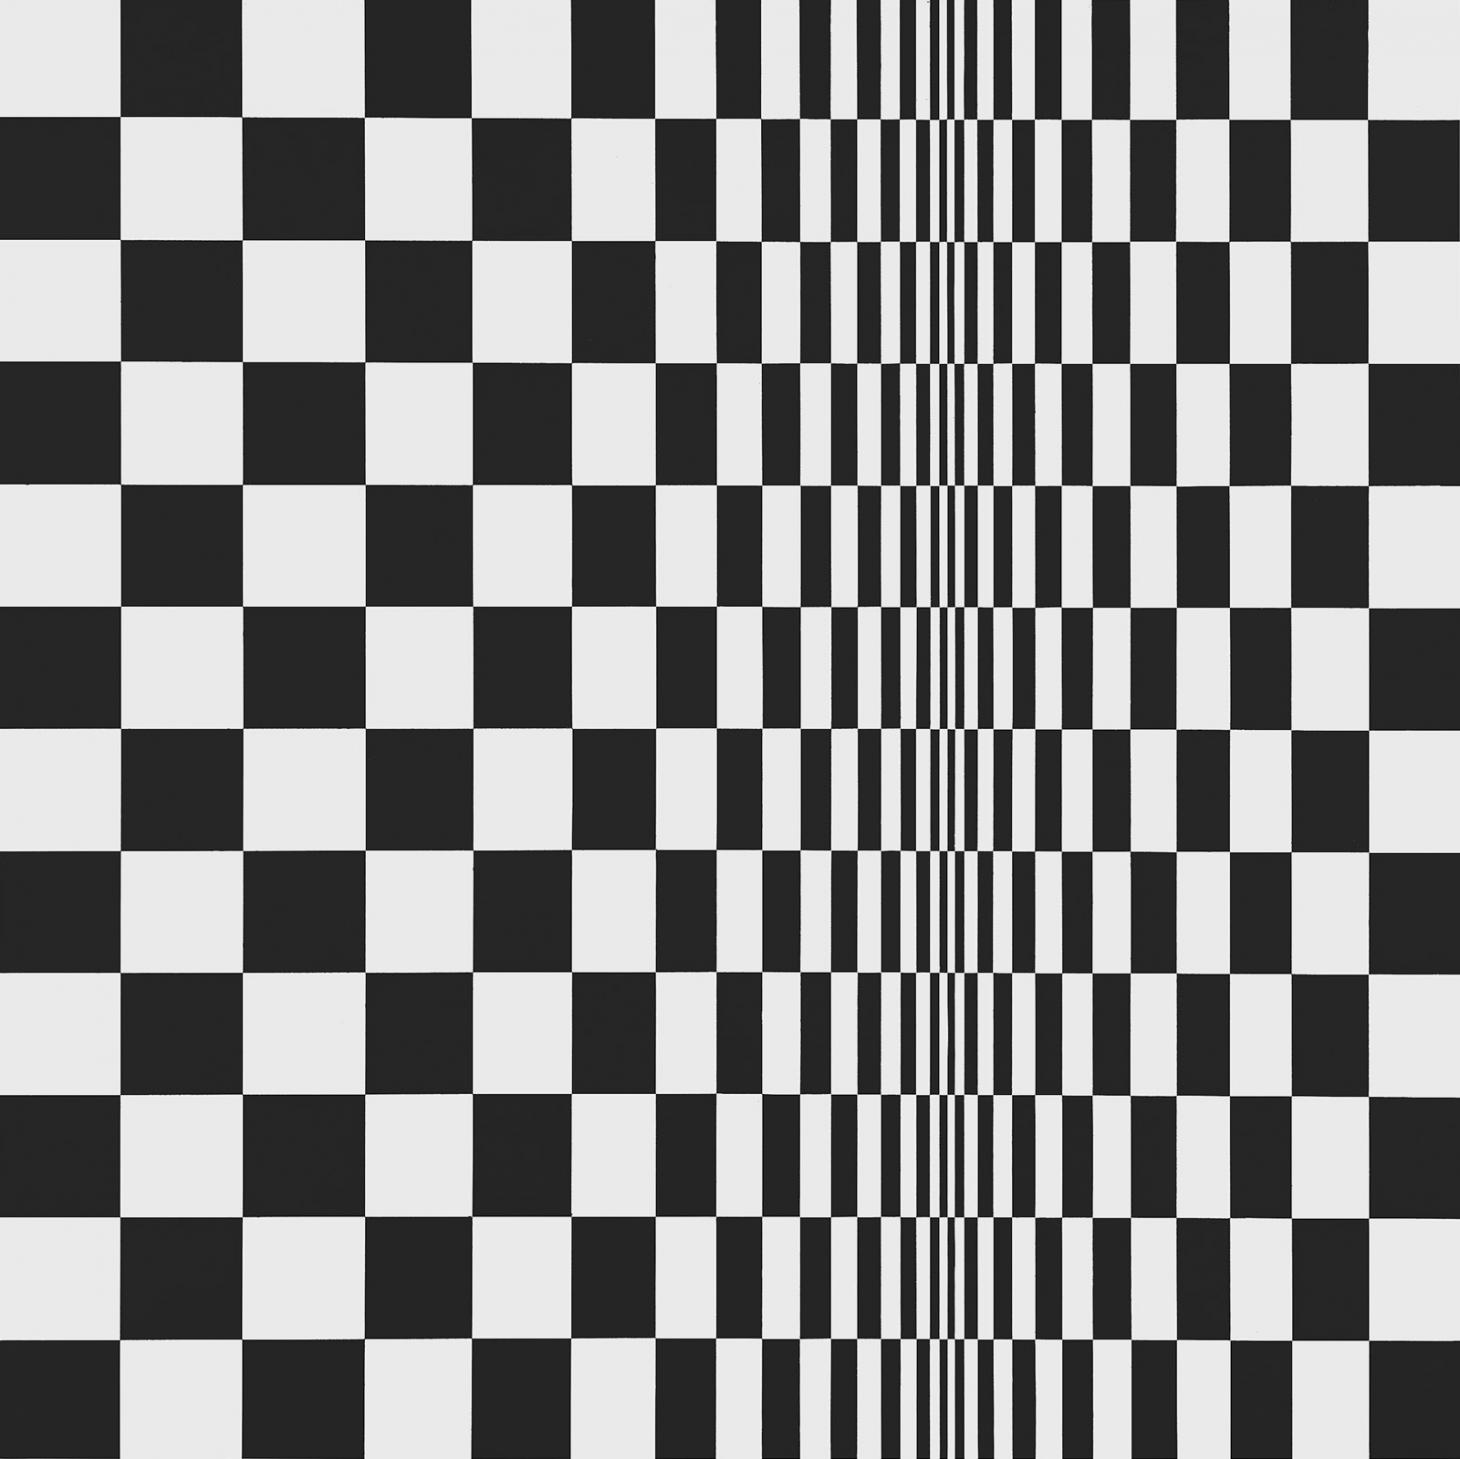 Movement in Squares, 1961, by Bridget Riley